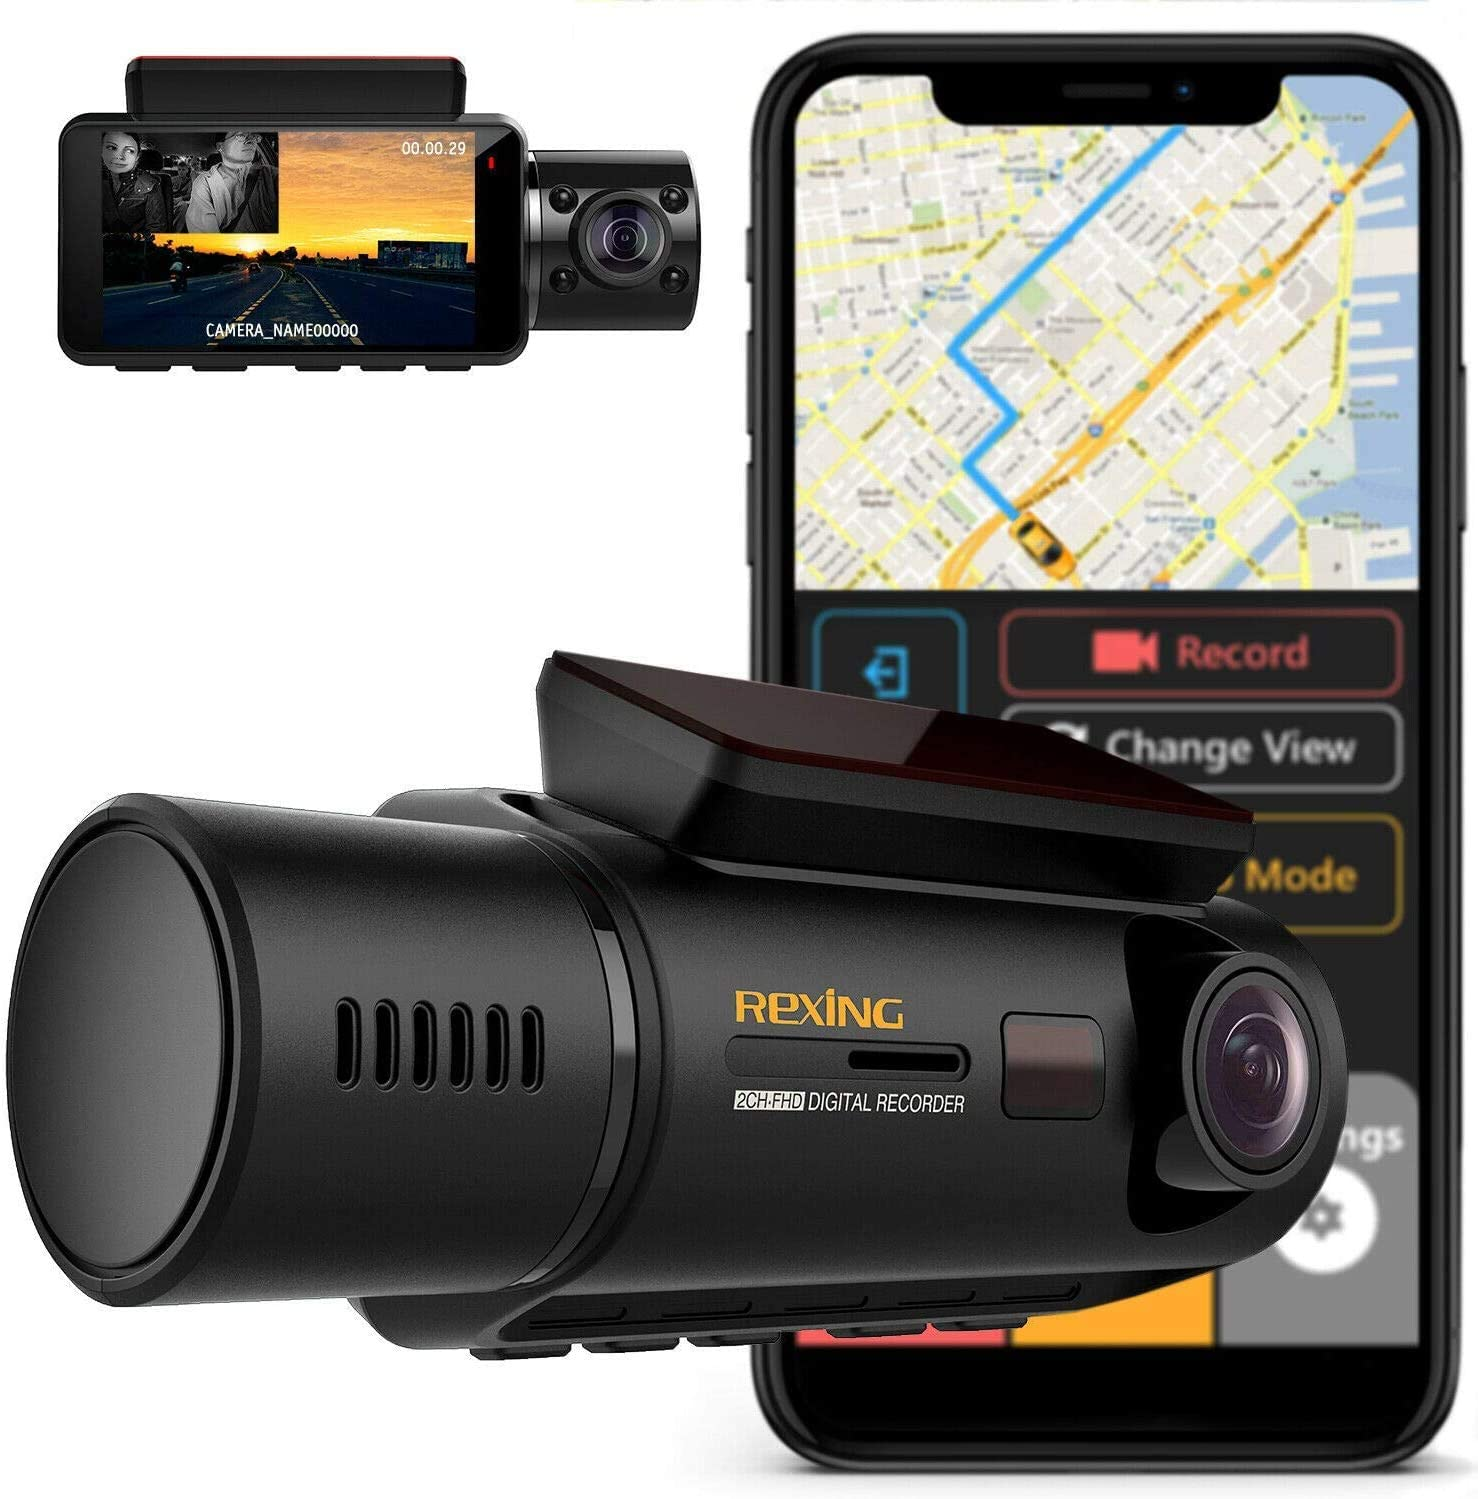 "Rexing V3 Dual Camera Front and Inside Cabin Infrared Night Vision UHD 2160p WiFi Car Taxi Dash Cam with Supercapacitor, 2.7"" LCD Screen, Parking Monitor, Mobile App (2020 Version V3 - with GPS)"